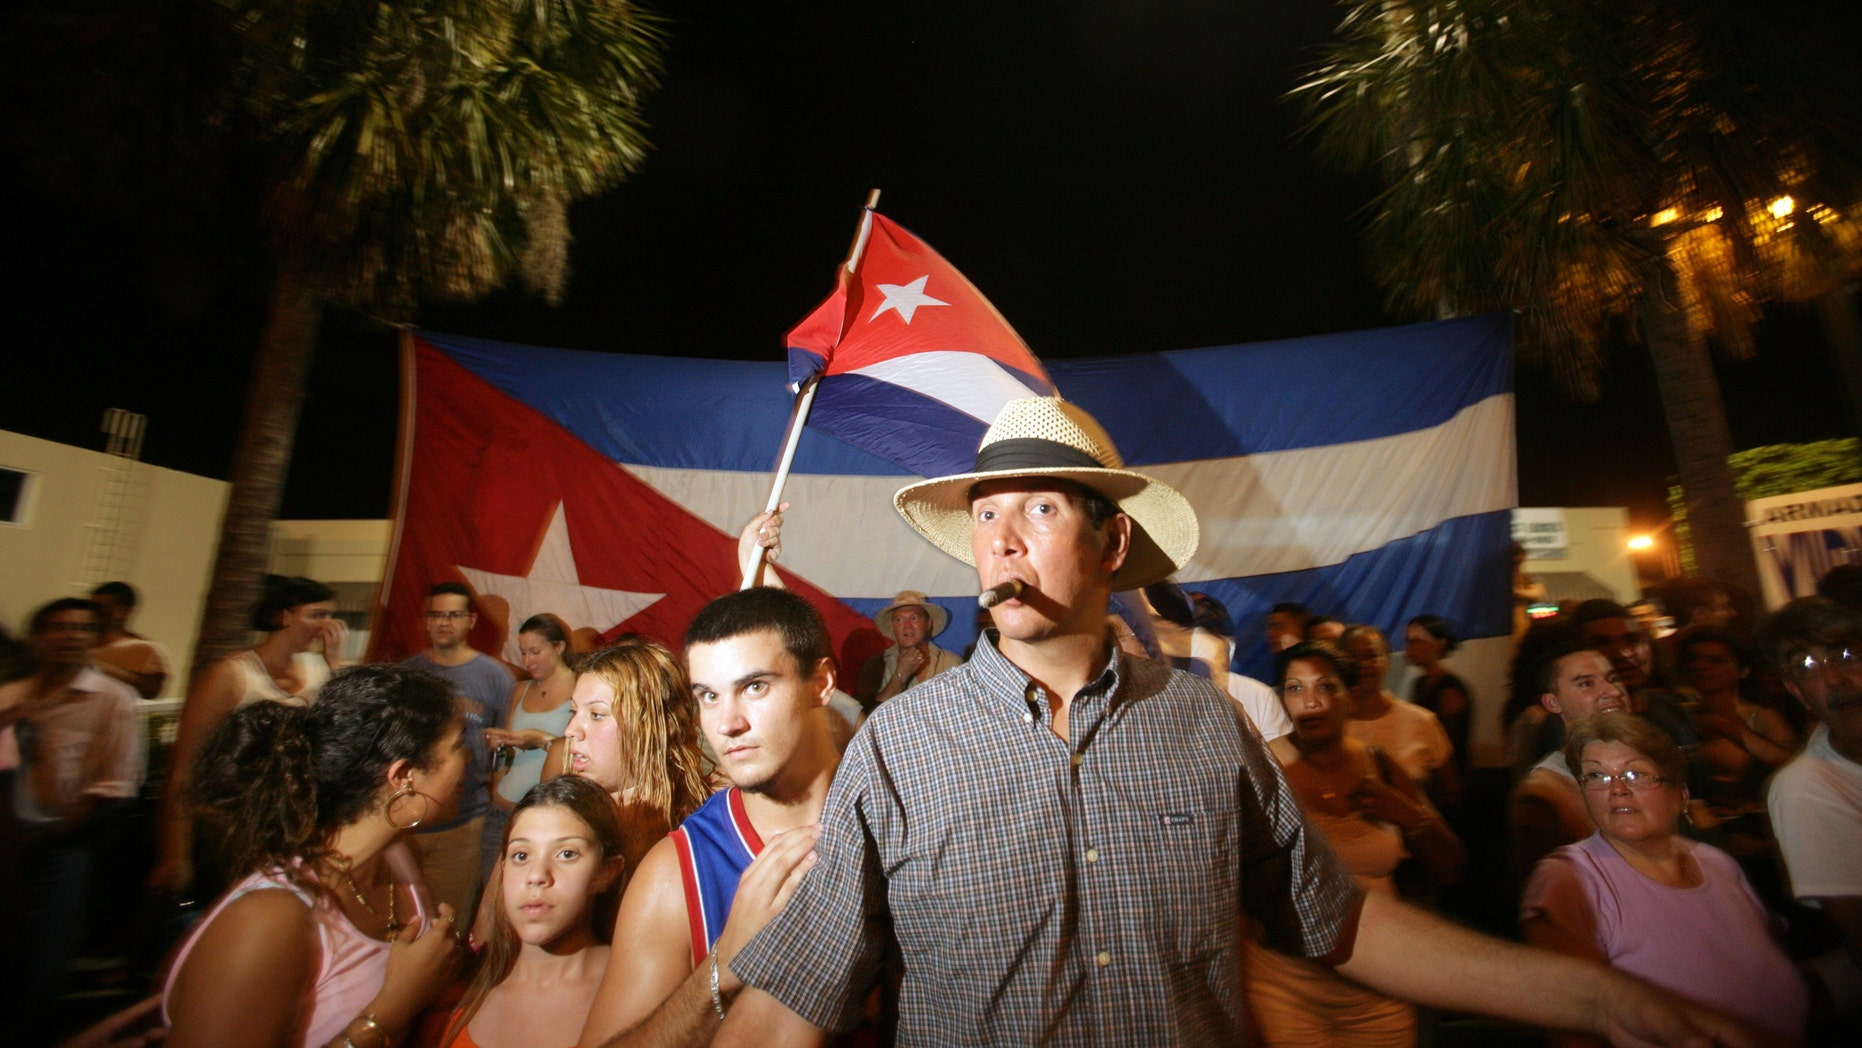 MIAMI - JULY 31: A crowd of Cubans wave flags and dance in the street after hearing news that Cuban leader Fidel Castro was ill and ceded power to his younger brother on July 31, 2006 in the Little Havana neighborhood of Miami, Florida. According to reports, Fidel Castro has temporarily handed over his Presidential powers to his brother Raul Castro and announced that he underwent surgery for intestinal bleeding.  (Photo by Richard Patterson/Getty Images)